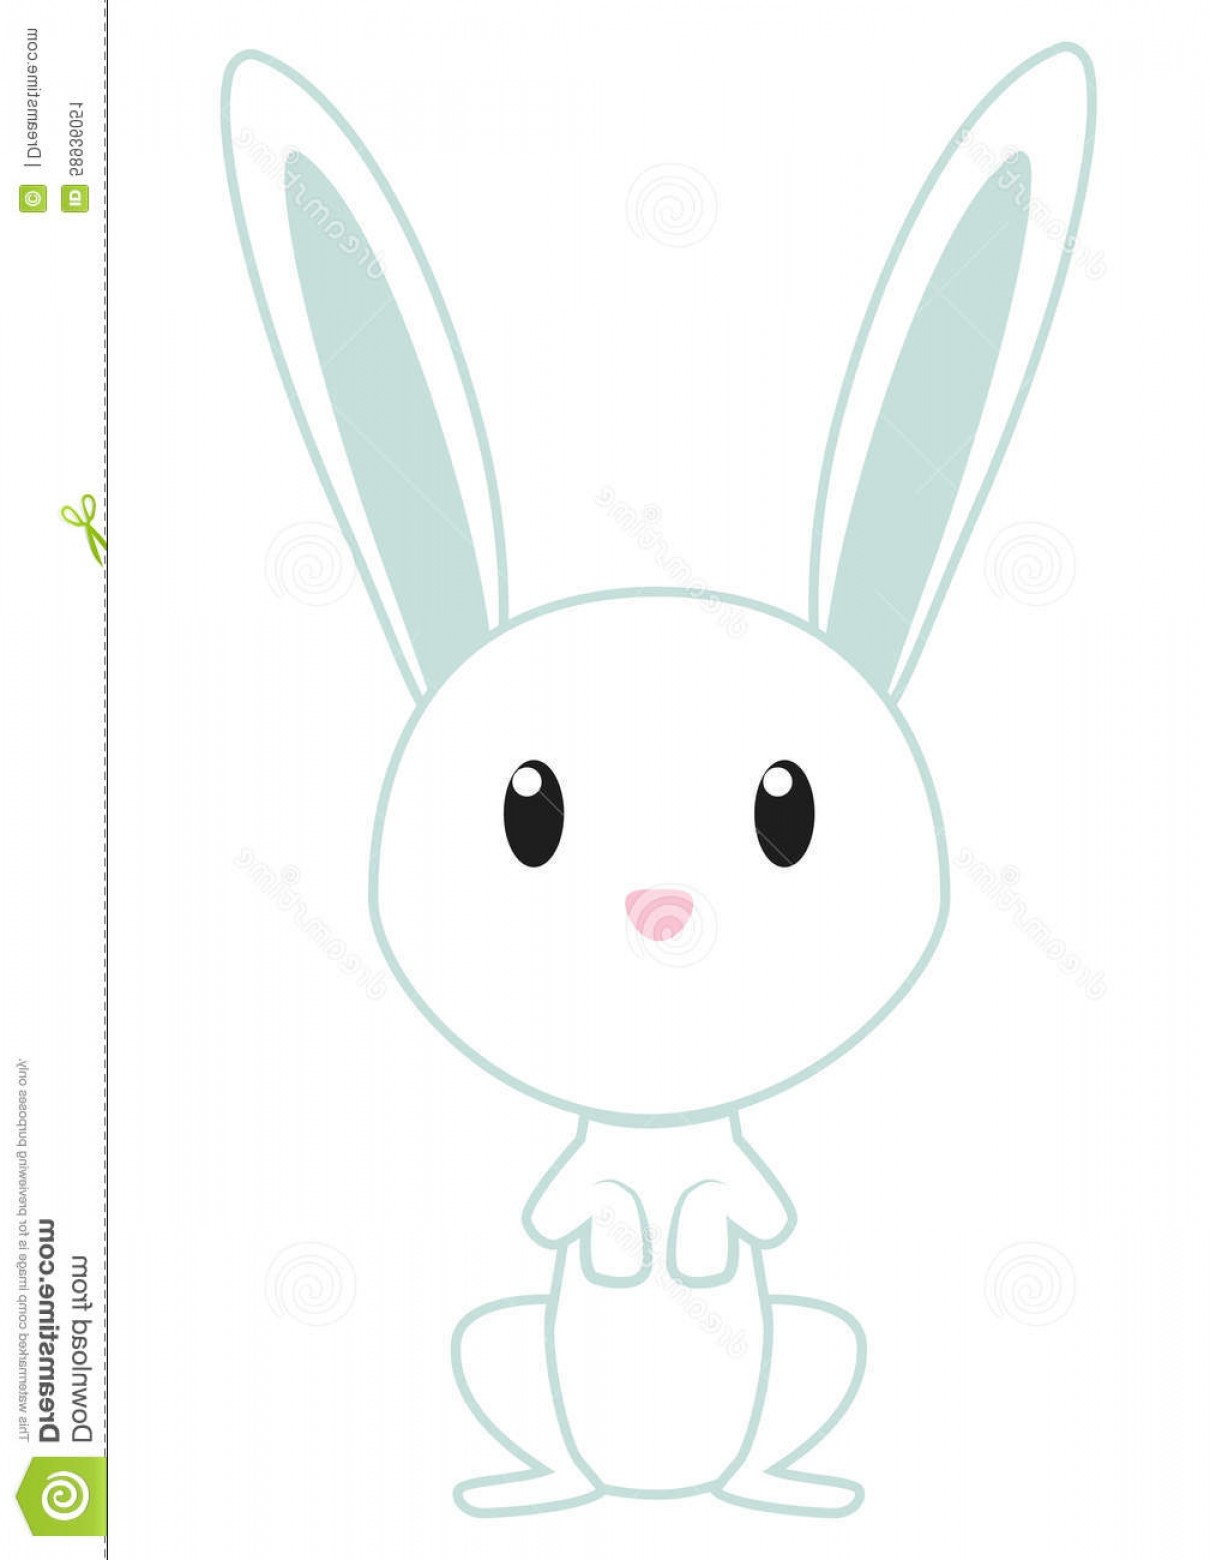 Animated Bunny Face Vector: Stock Illustration Cute Bunny Vector White As Character Image